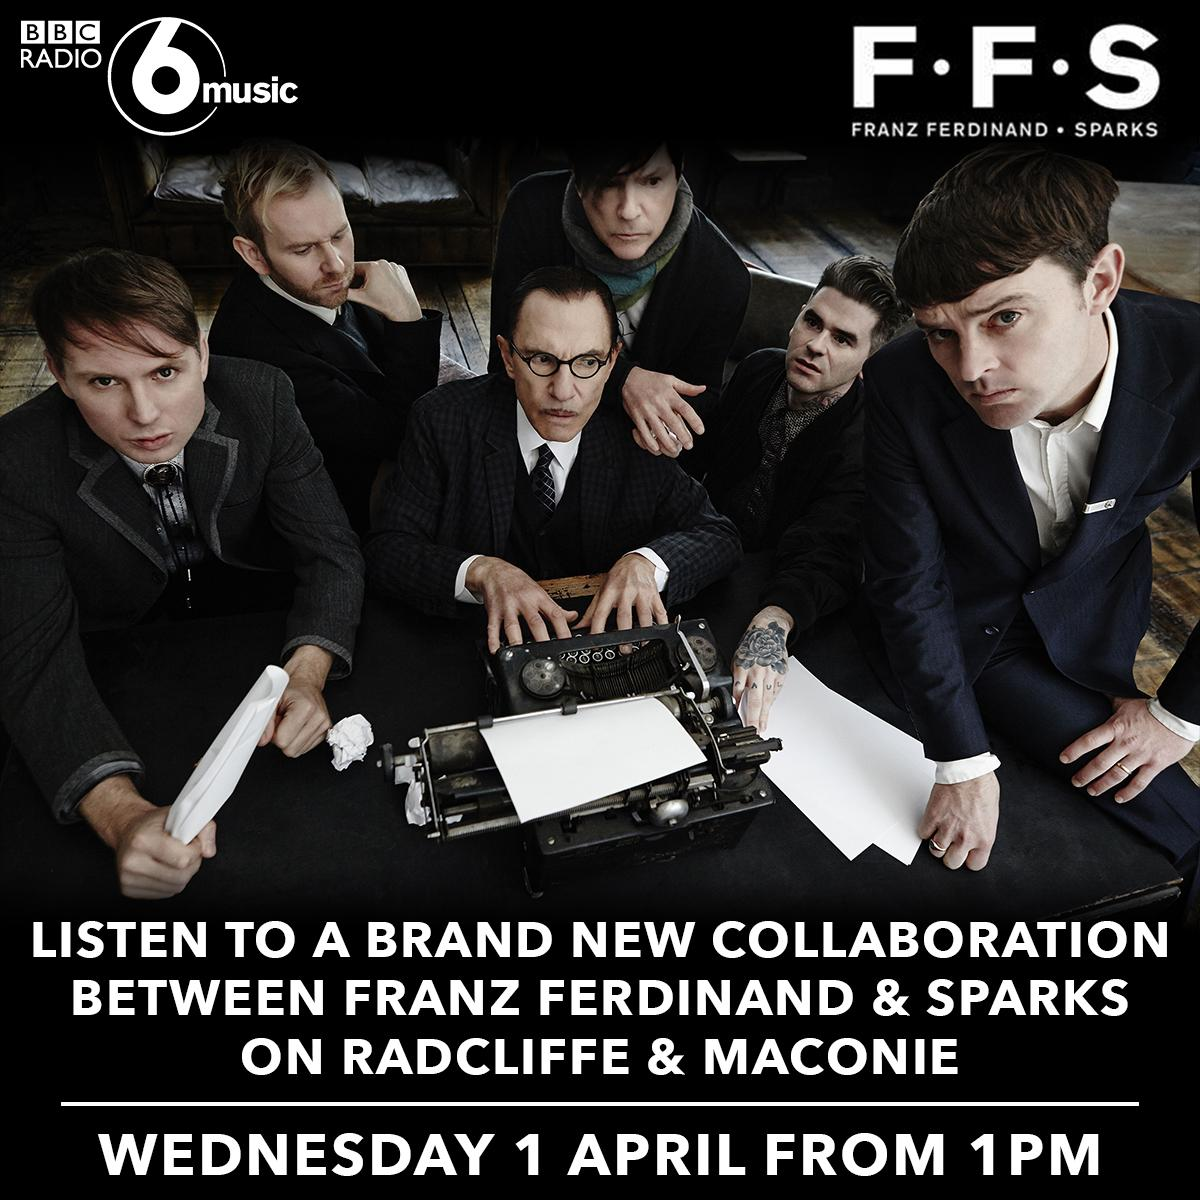 #AlsoComingUp a FIRST PLAY of @FFS_Music – the new band from @Franz_Ferdinand and @SparksOfficial. @BBC6MusicNews http://t.co/MGcRdvX2ez